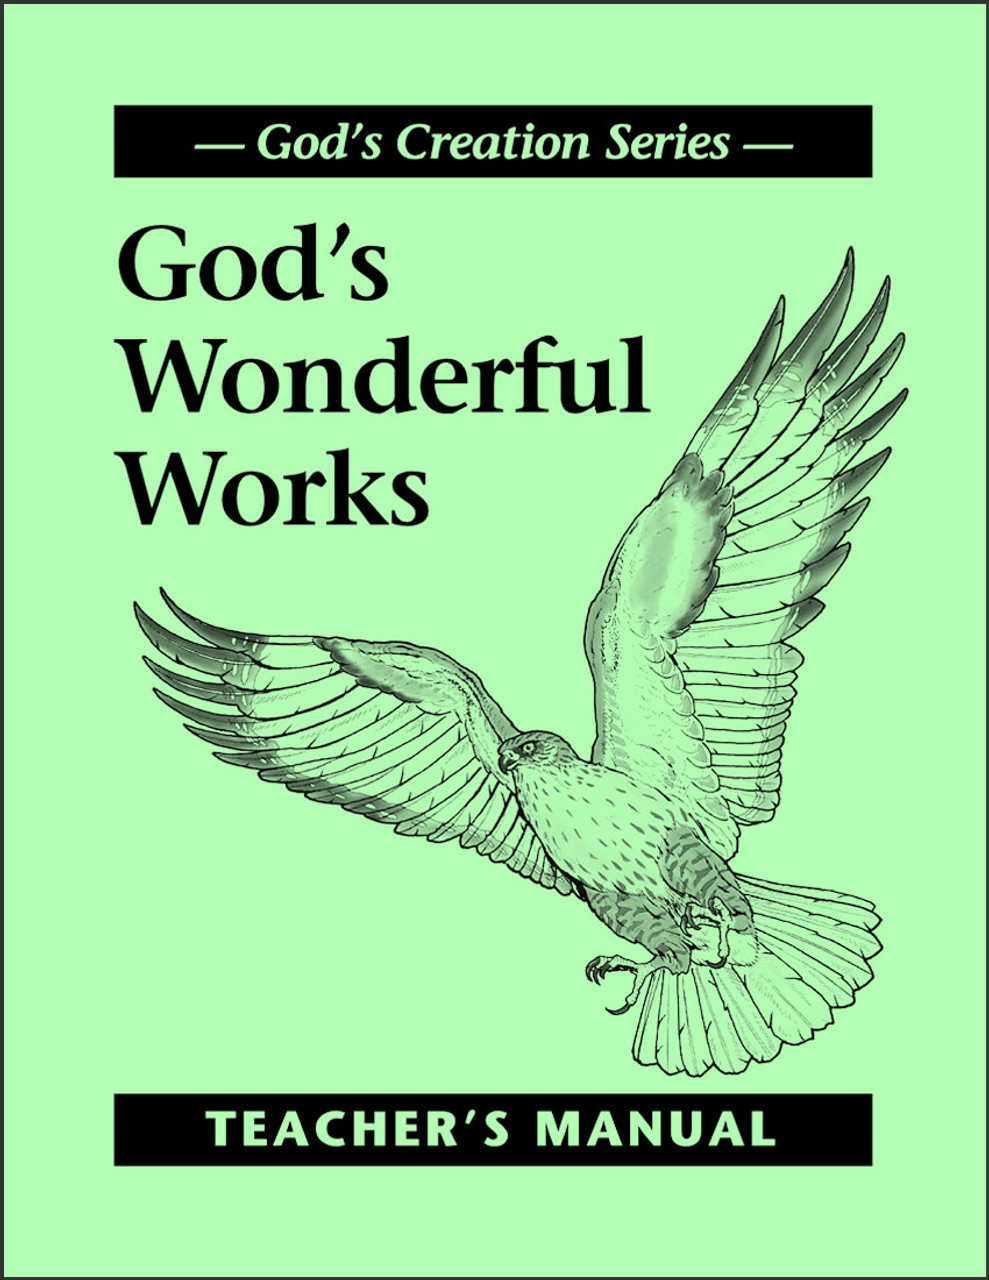 God's Wonderful Works - Teacher's Manual